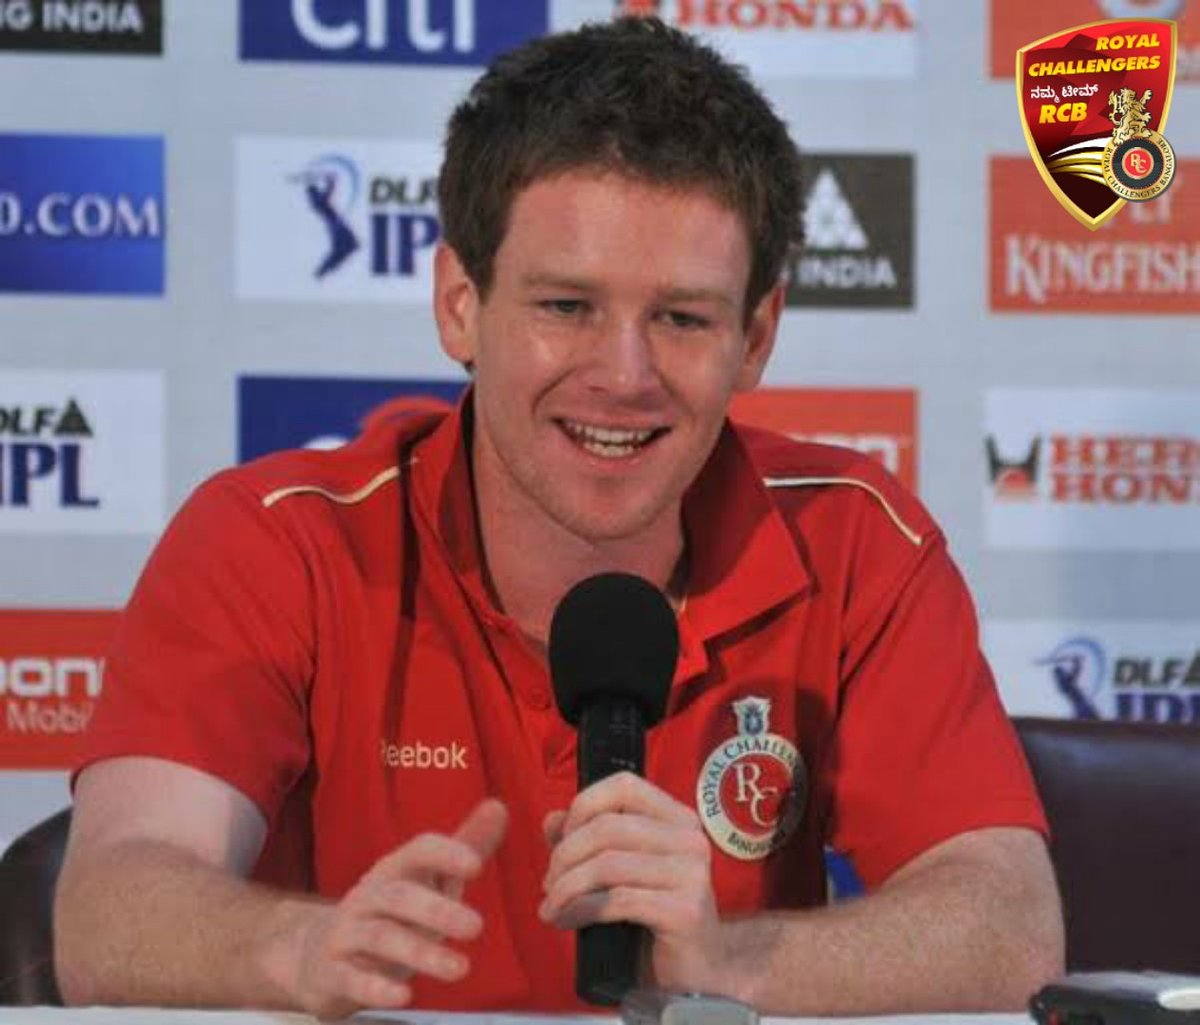 DID YOU KNOW?  - Eoin Morgan was part of the @RCBTweets set-up in the 2010 edition of the IPL.  Challengers, do you want to see the World Cup-winning captain don the red attire once again?  #IPL2020 #NammaTeamRCB #NavuBengaluru #PlayBold #EoinMorgan #IPLAuction<br>http://pic.twitter.com/hbhESjFaoh